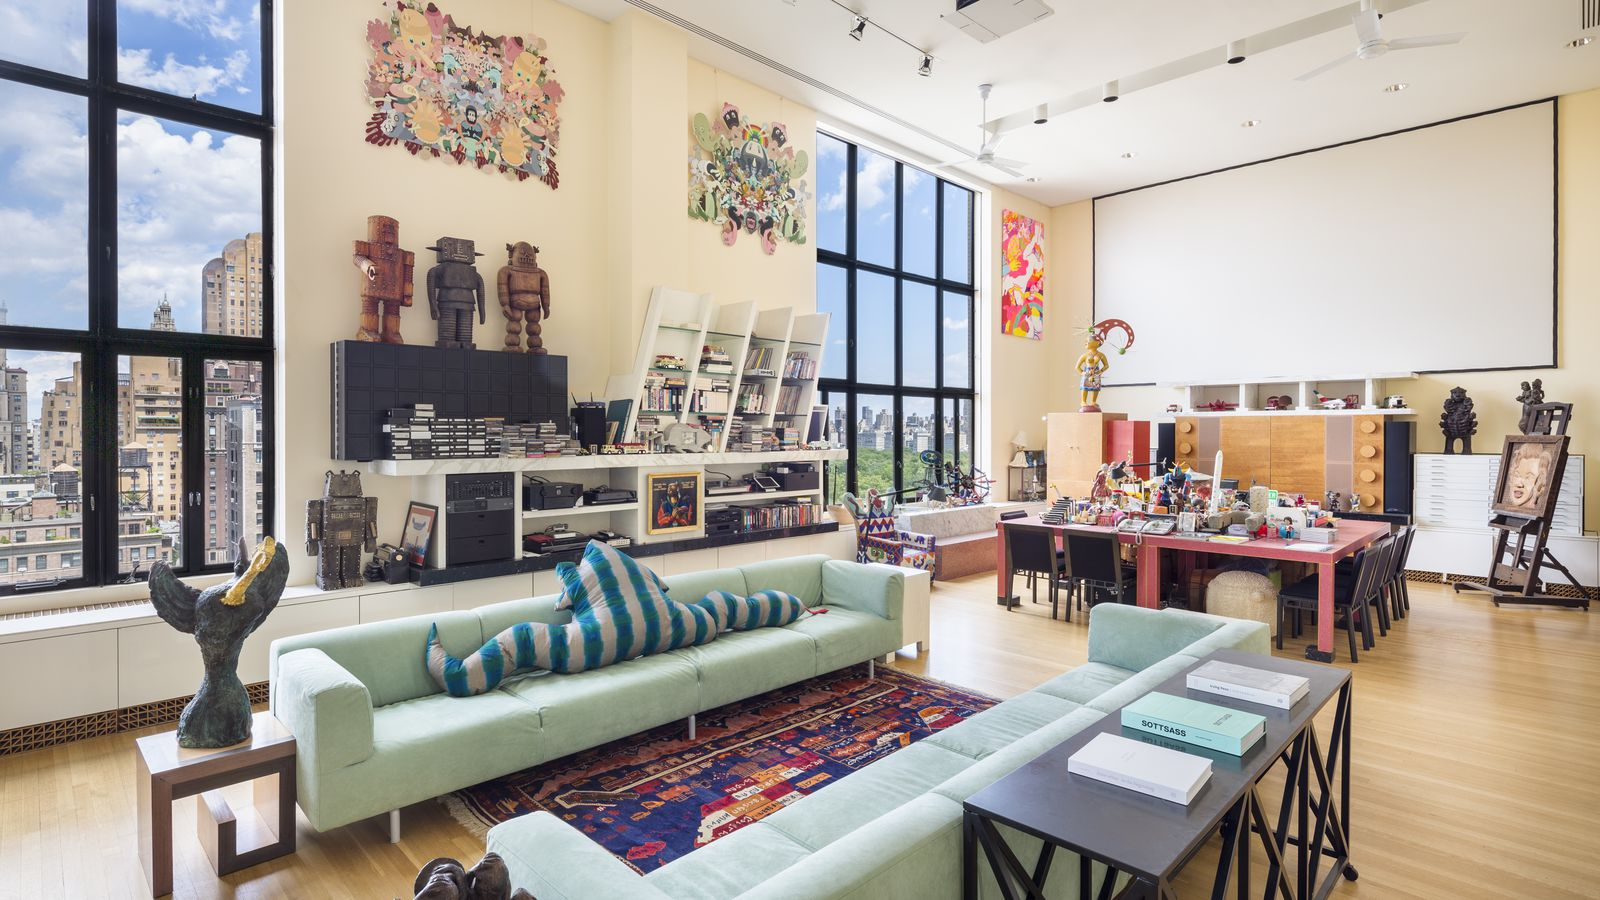 Upper west side penthouse designed by memphis design founder ettore sottsass seeks 19m curbed ny for New york interior design online